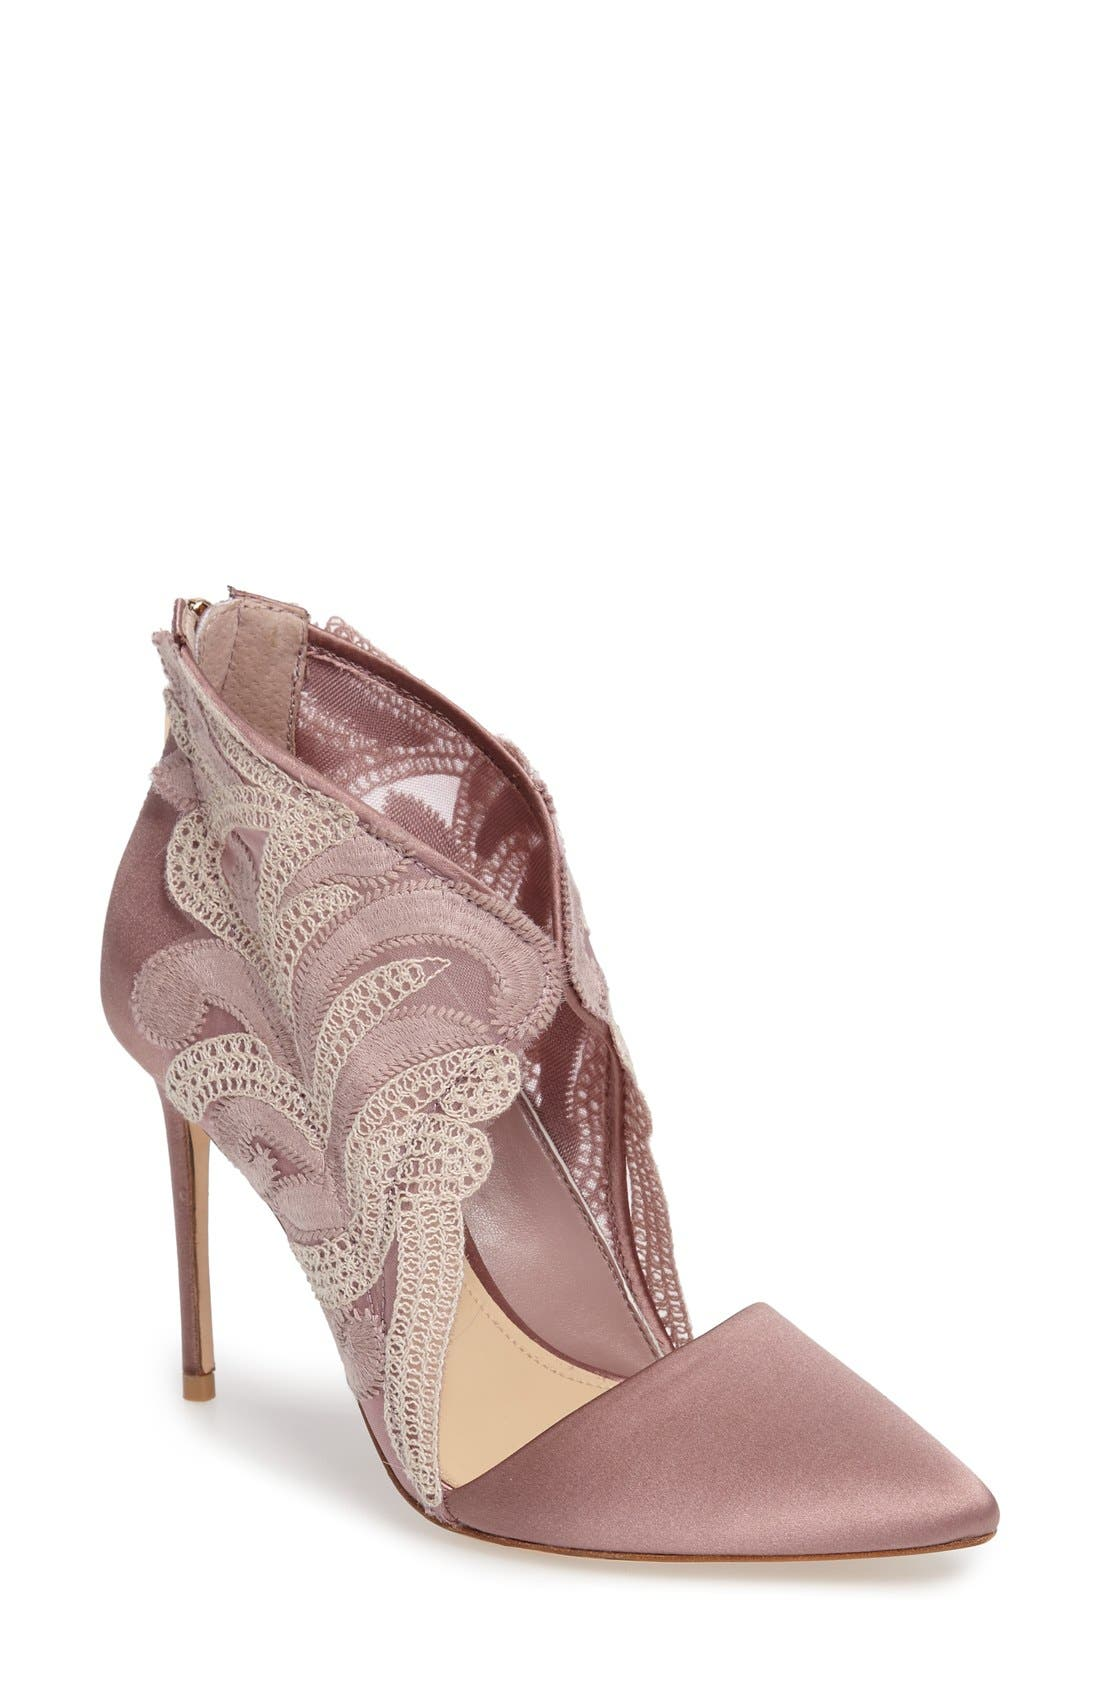 Alternate Image 1 Selected - Imagine by Vince Camuto Obin Lace Detailed Pointy Toe Pump (Women)